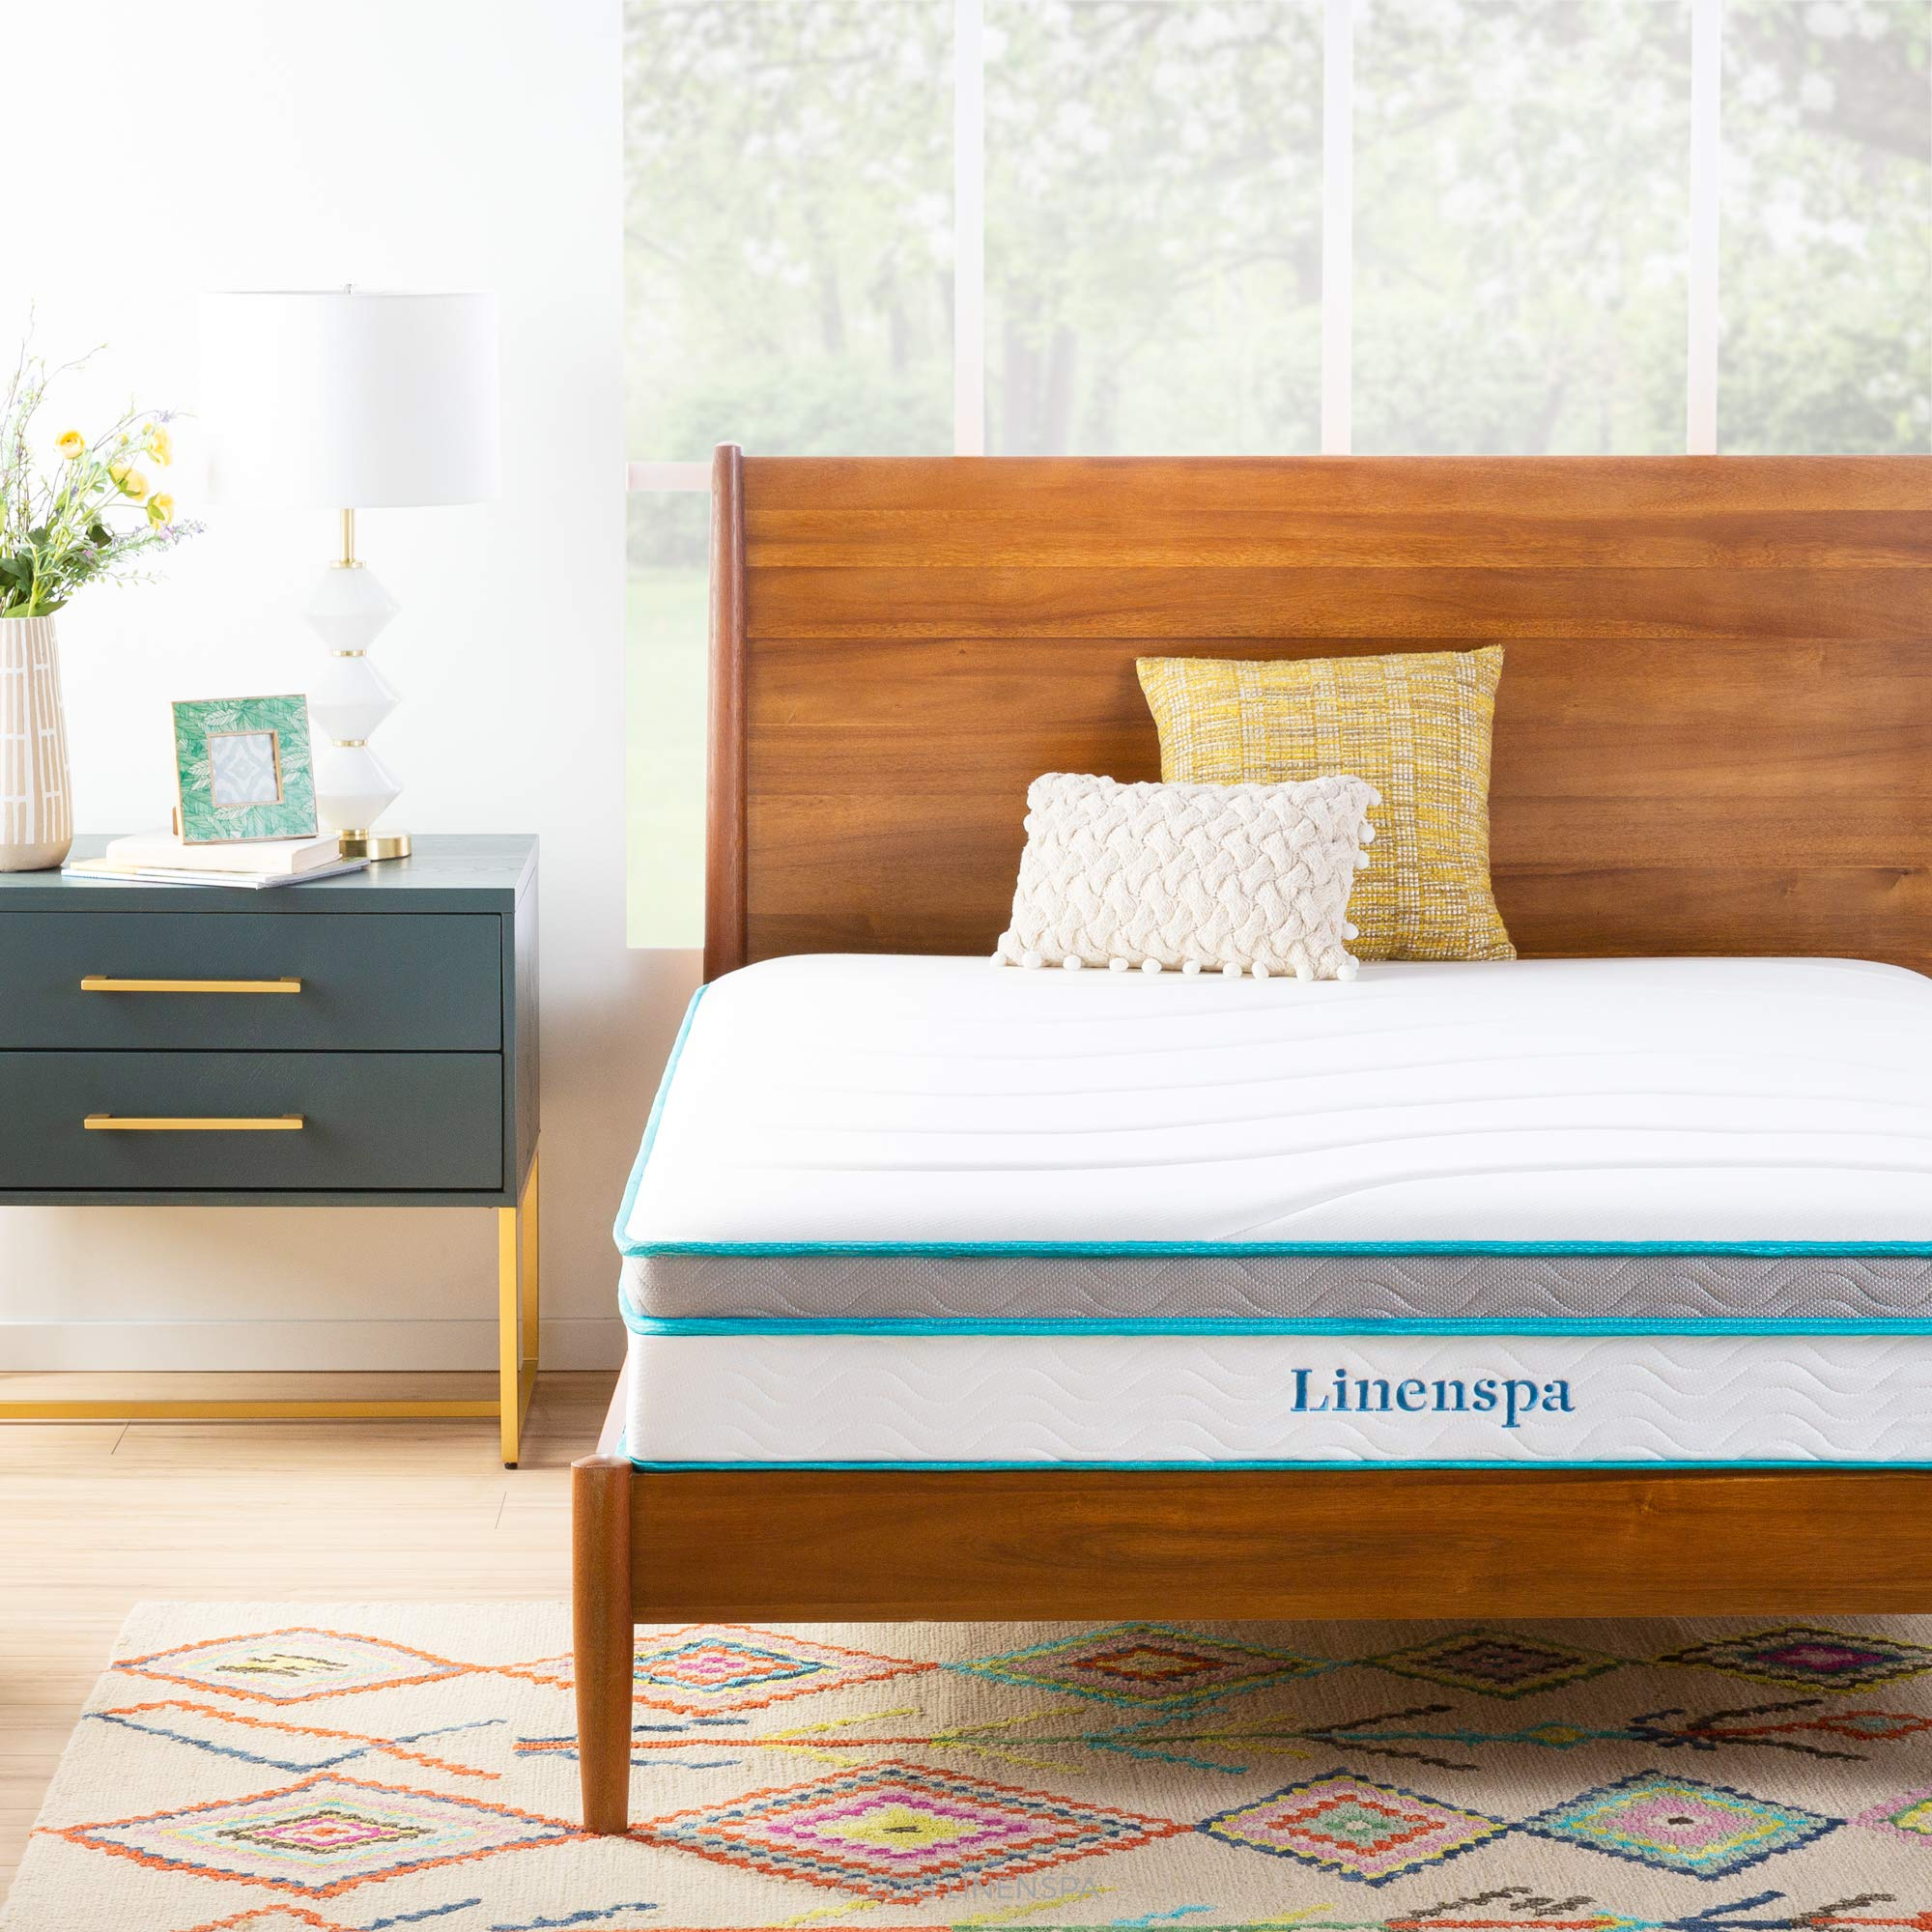 Linenspa LS10FFMFSP Bed Mattress Conventional, Full, 10-Inch